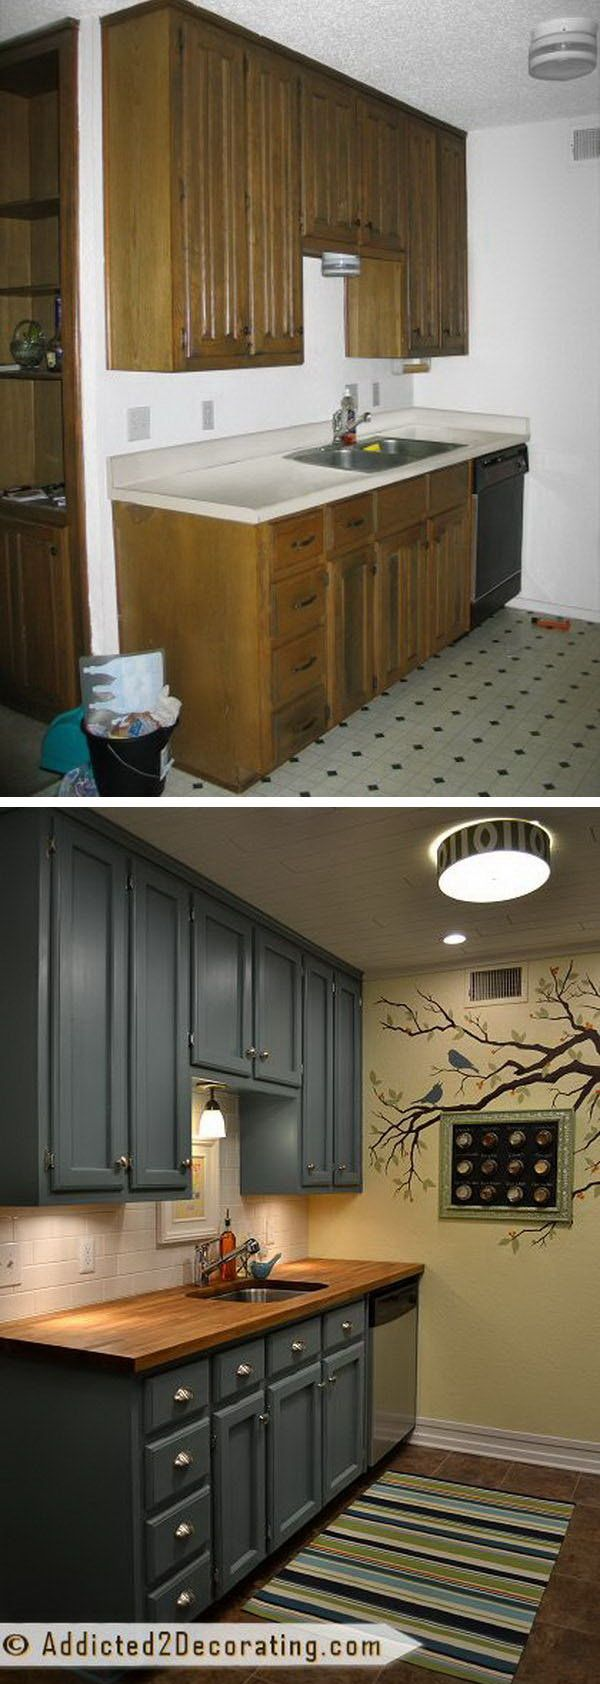 Küchenschränke fugen before and after teeny tiny kitchen cheap makeover what an amazing